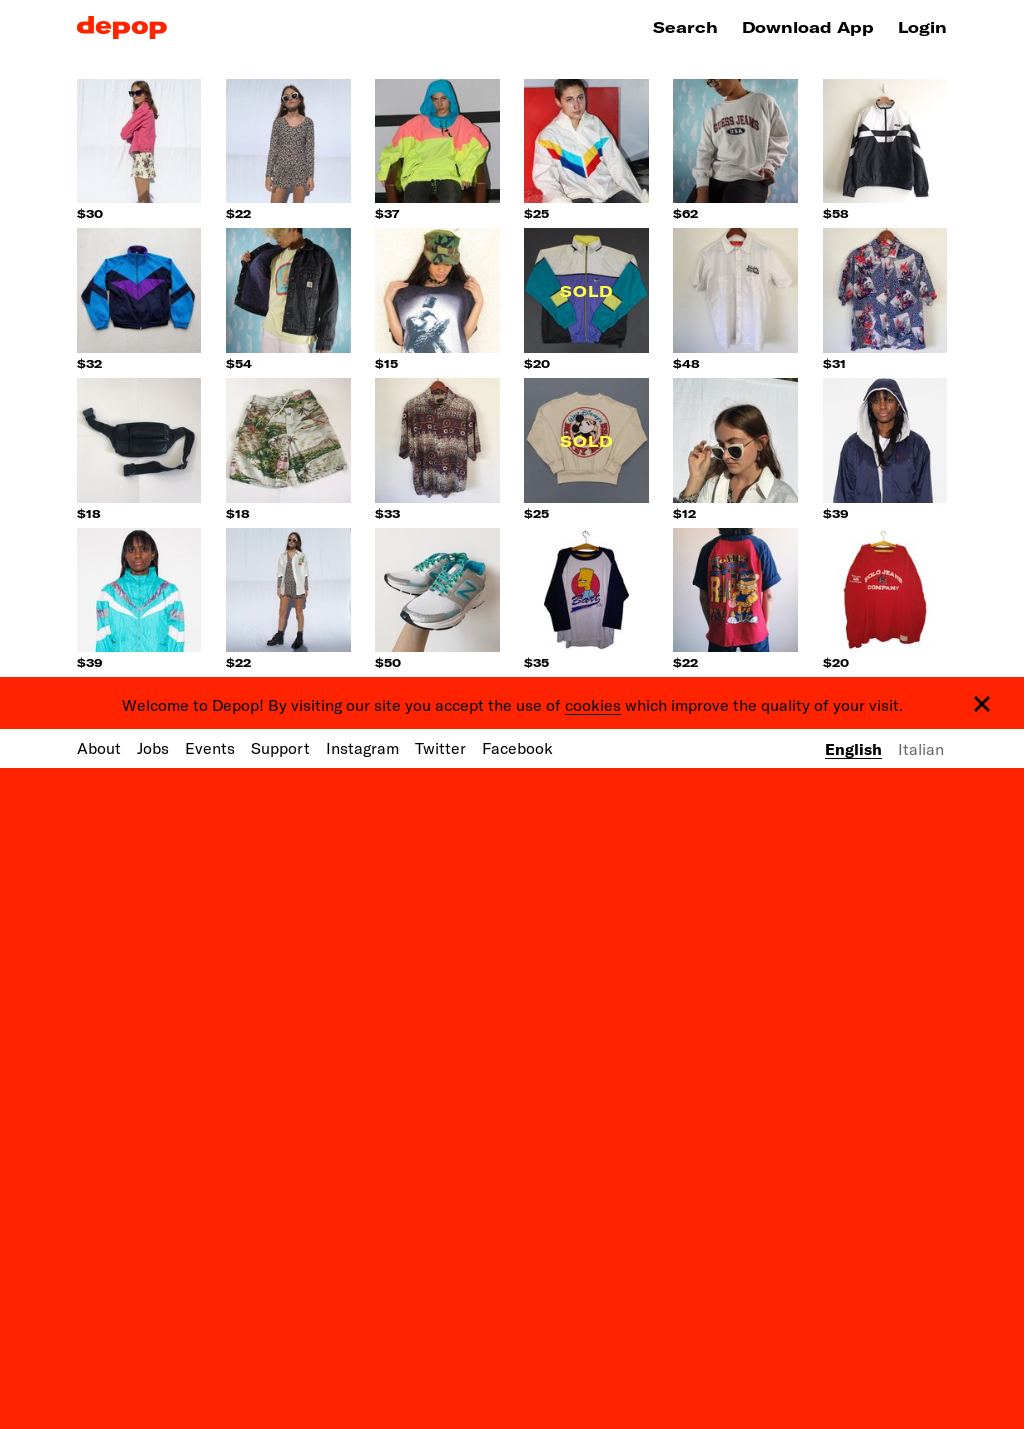 f0c47c628 Depop Competitors, Revenue and Employees - Owler Company Profile